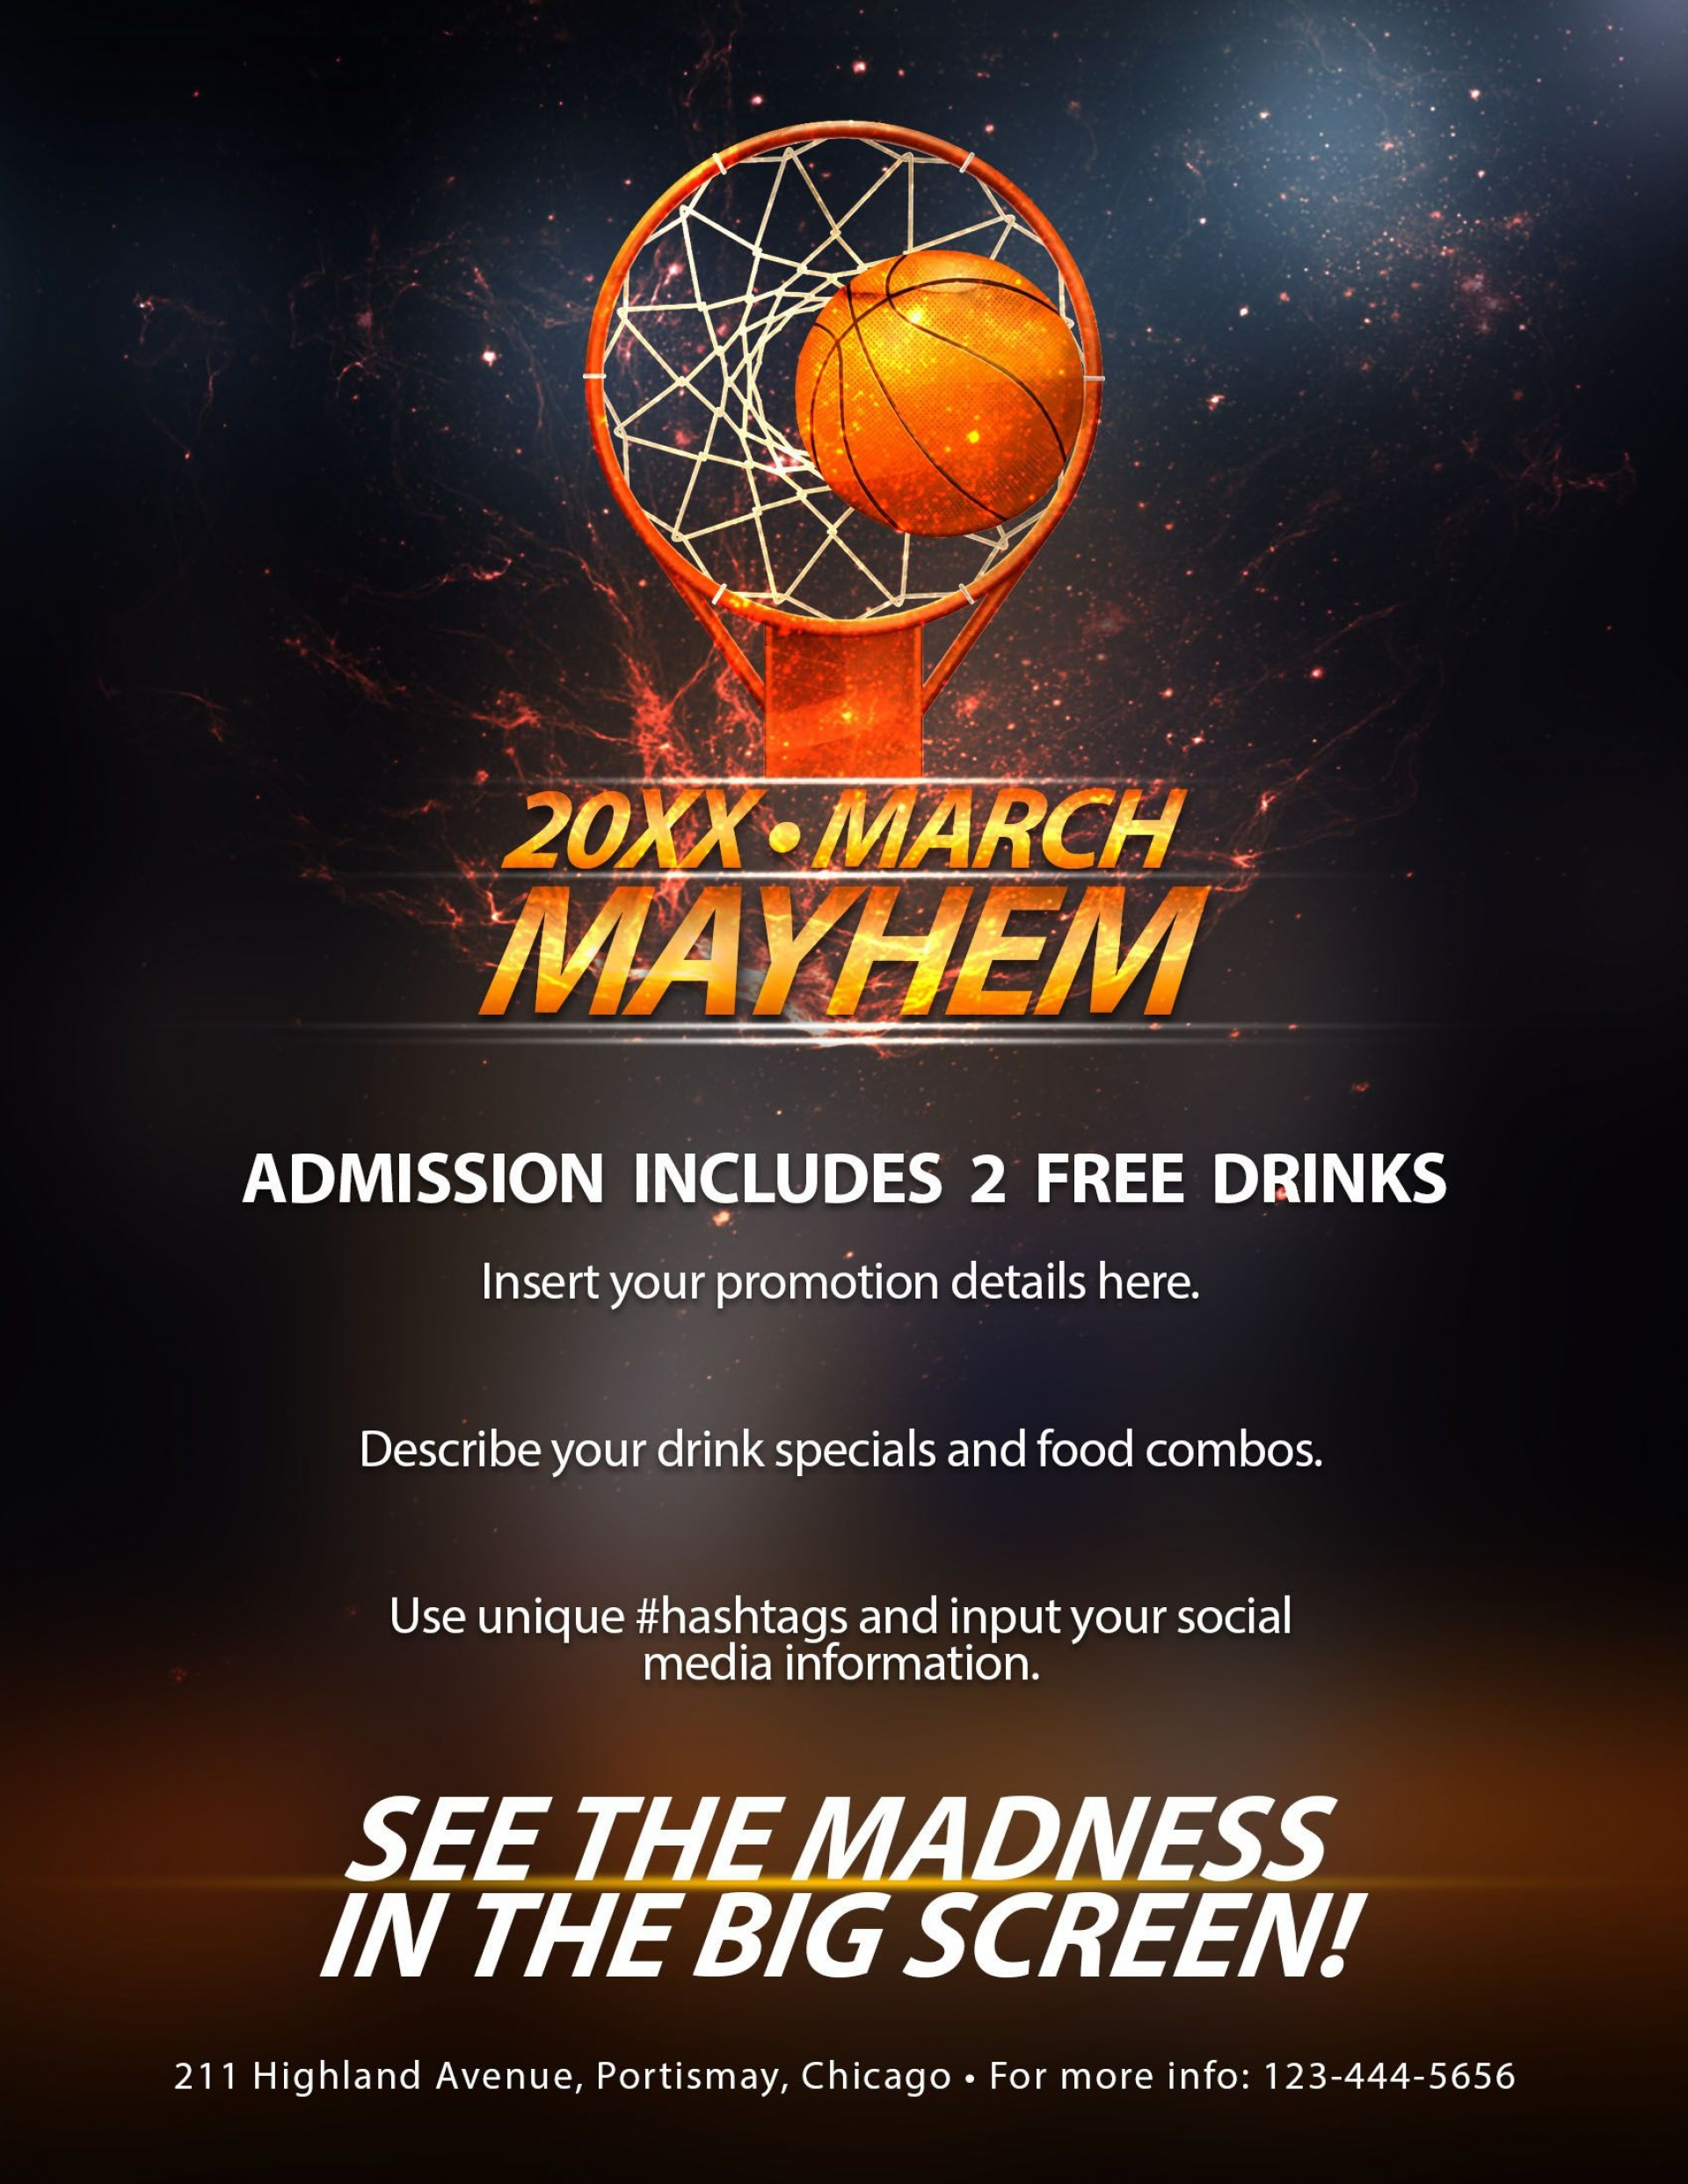 006 Surprising Free Basketball Flyer Template Design  Game 3 On Tournament Word1920